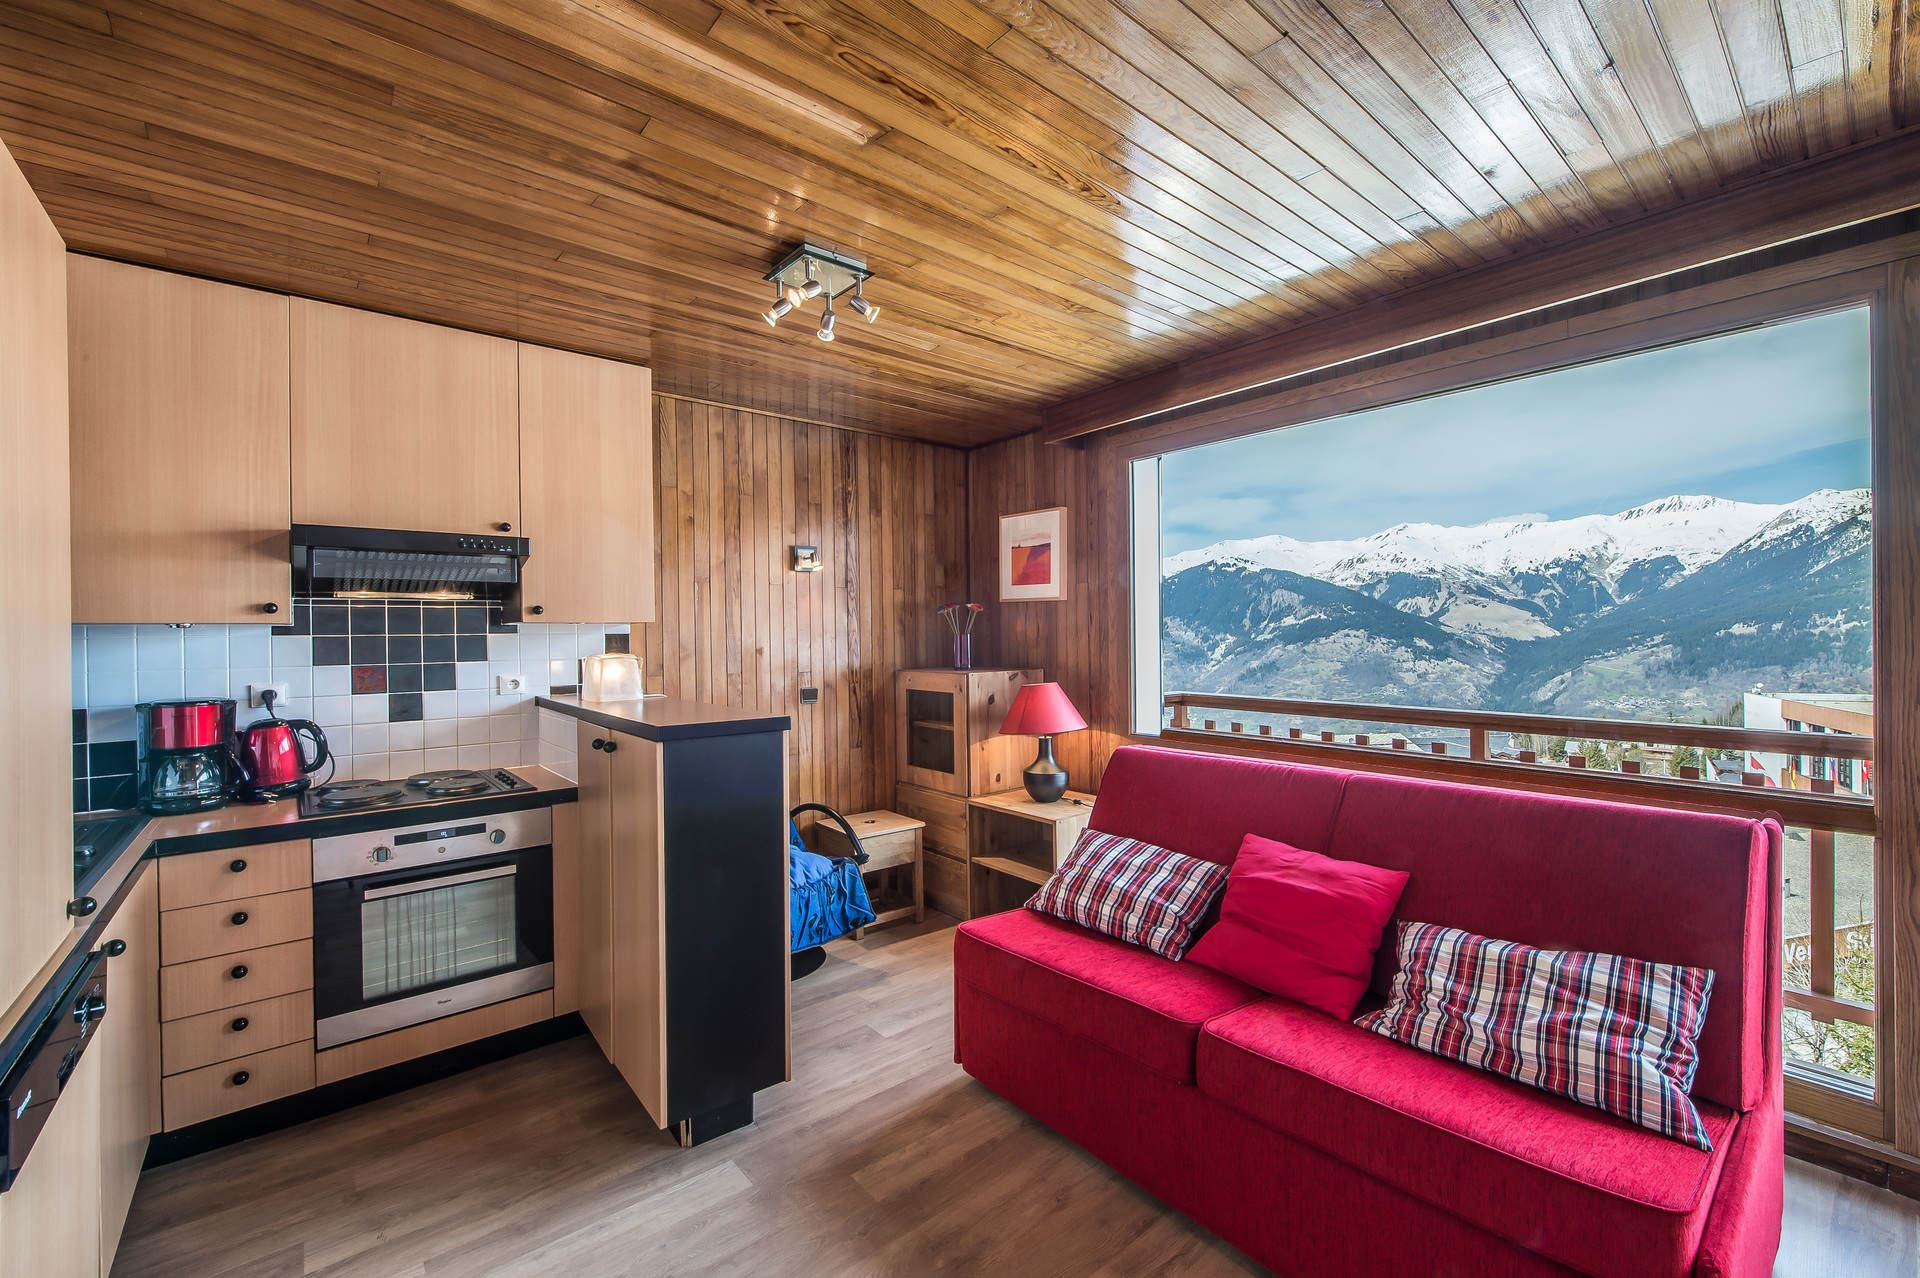 Studio 4 people ski-in ski-out / RESIDENCE 1650 25 (mountain of charm)